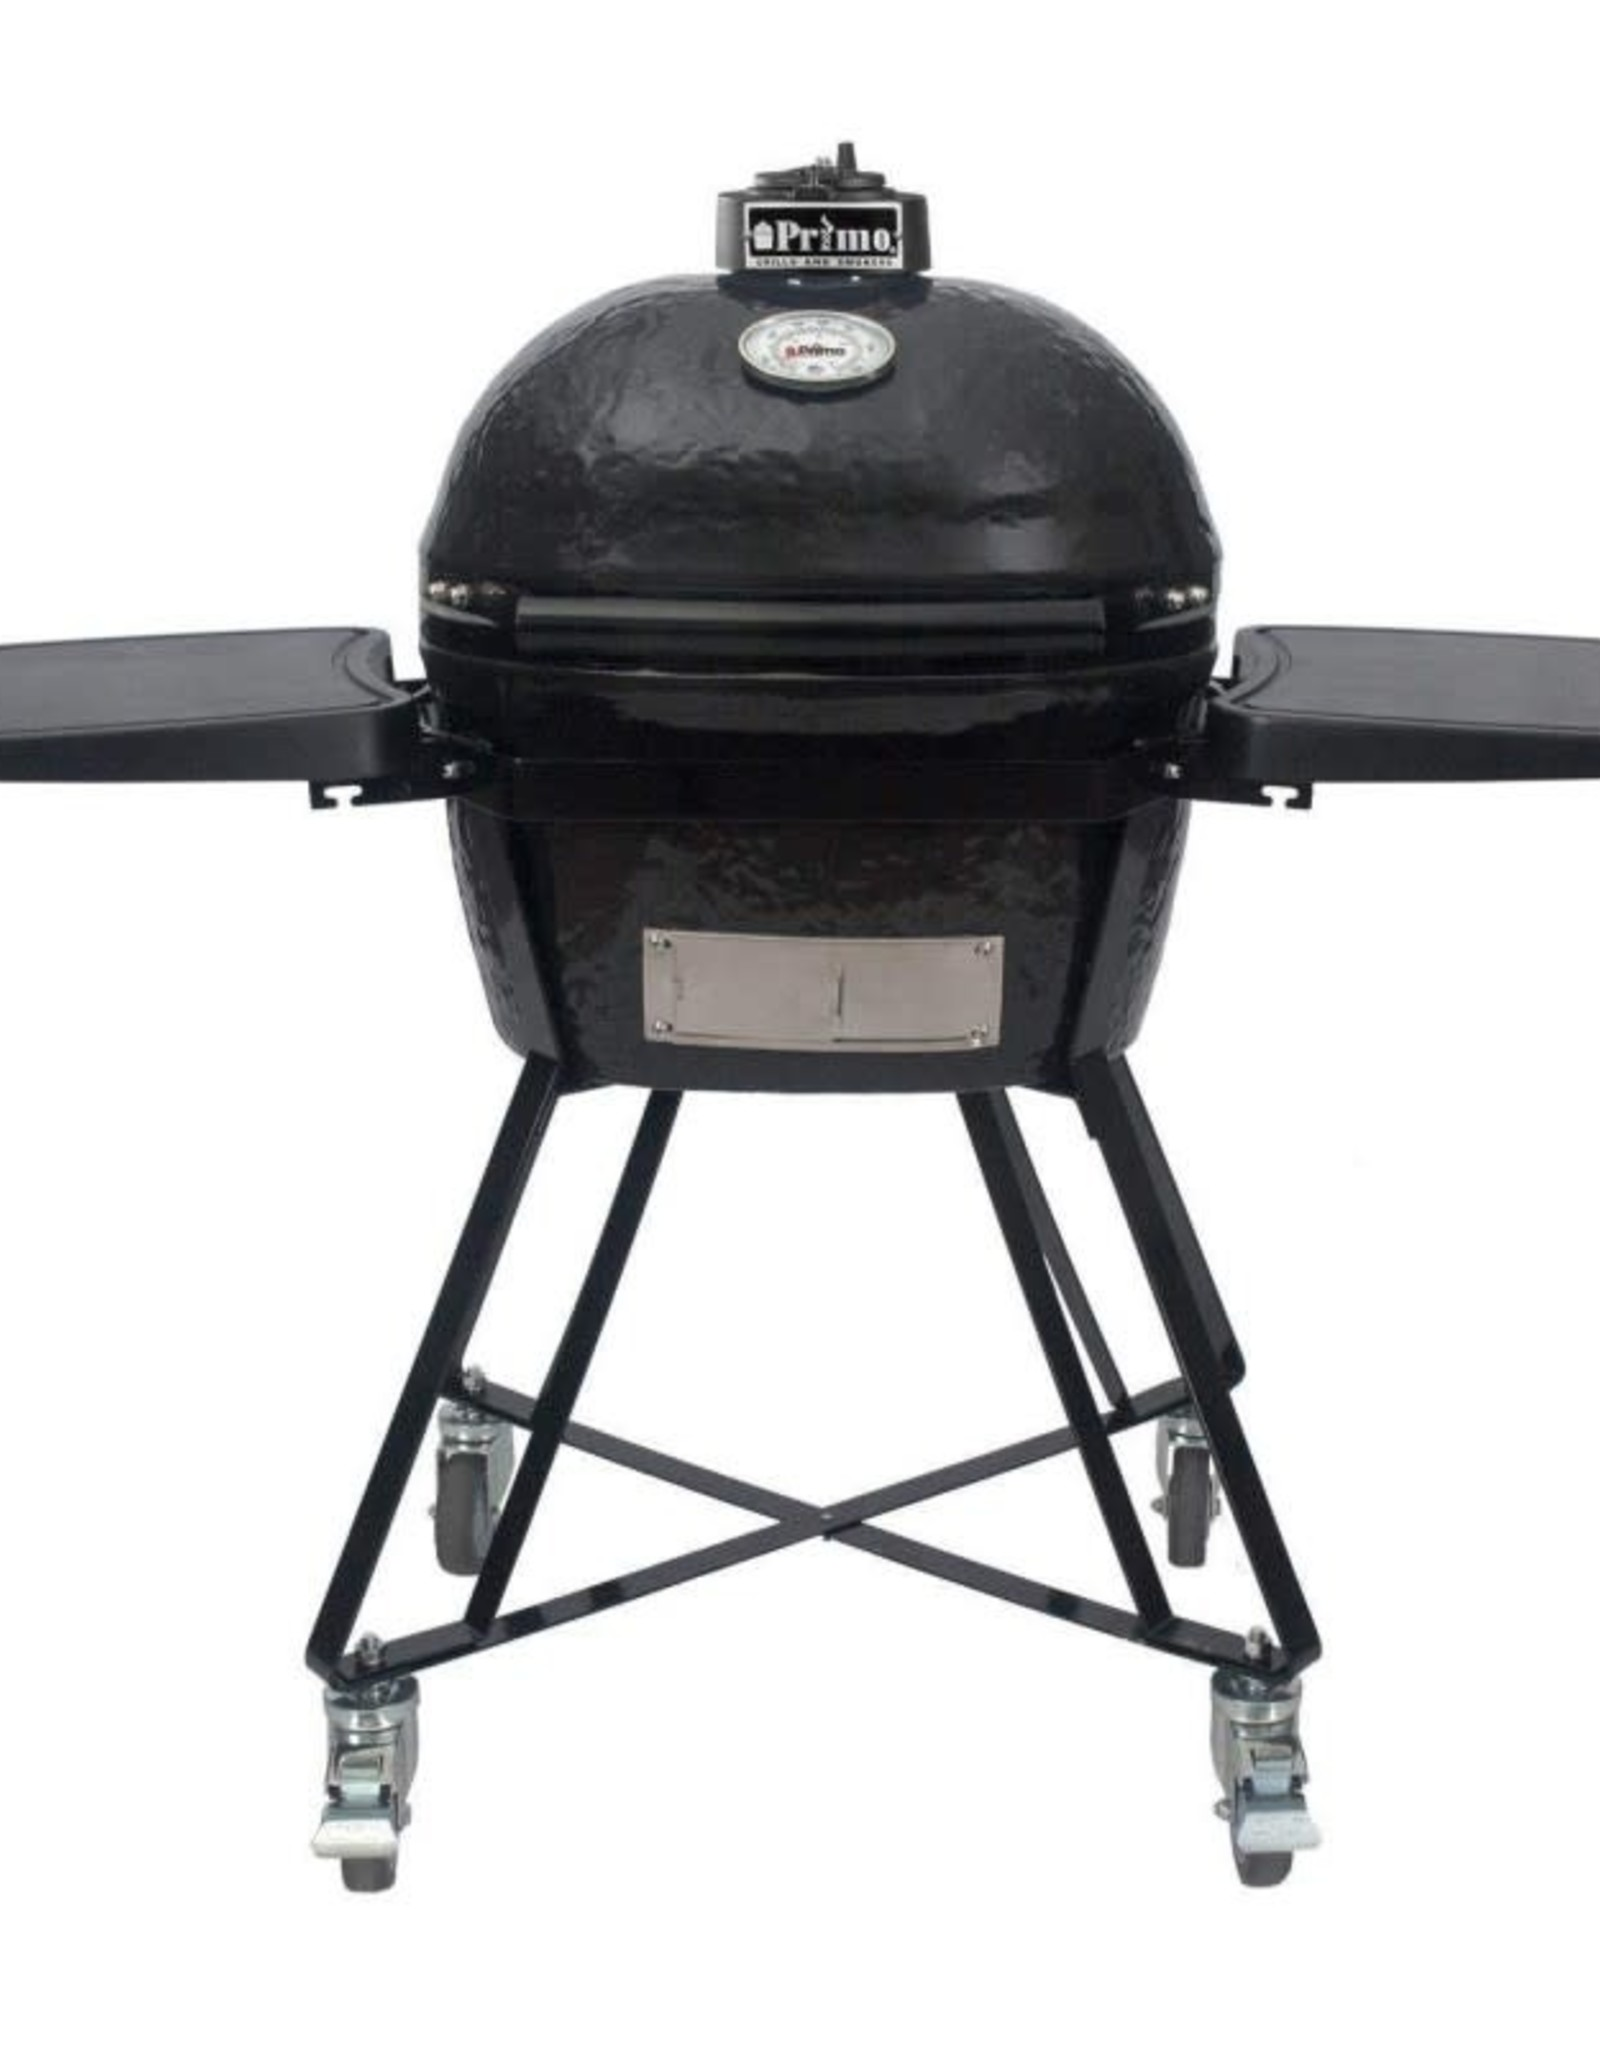 Primo Ceramic Grills Primo JR 200 All-In-One (Heavy Duty Stand, Side Shelves, Ash Tool, & Grate Lifter) #7400